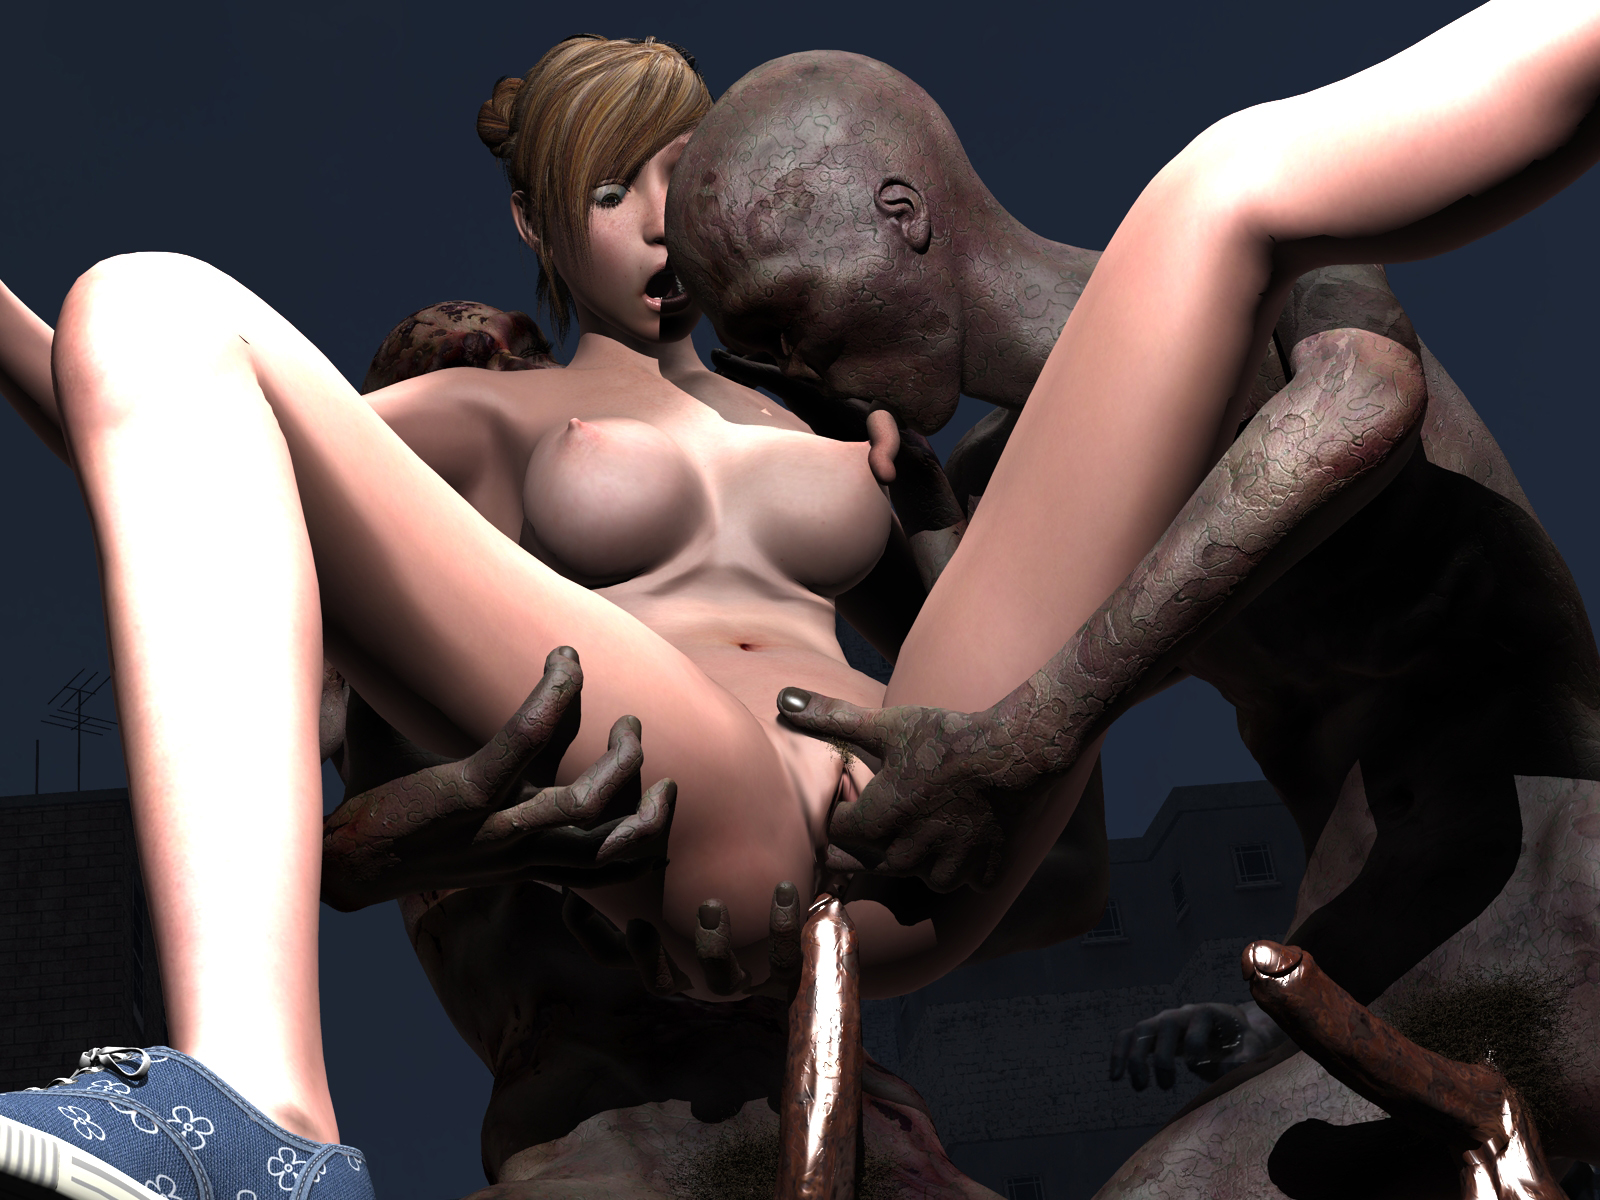 Pic hentai 3d cgi monster sexual galleries